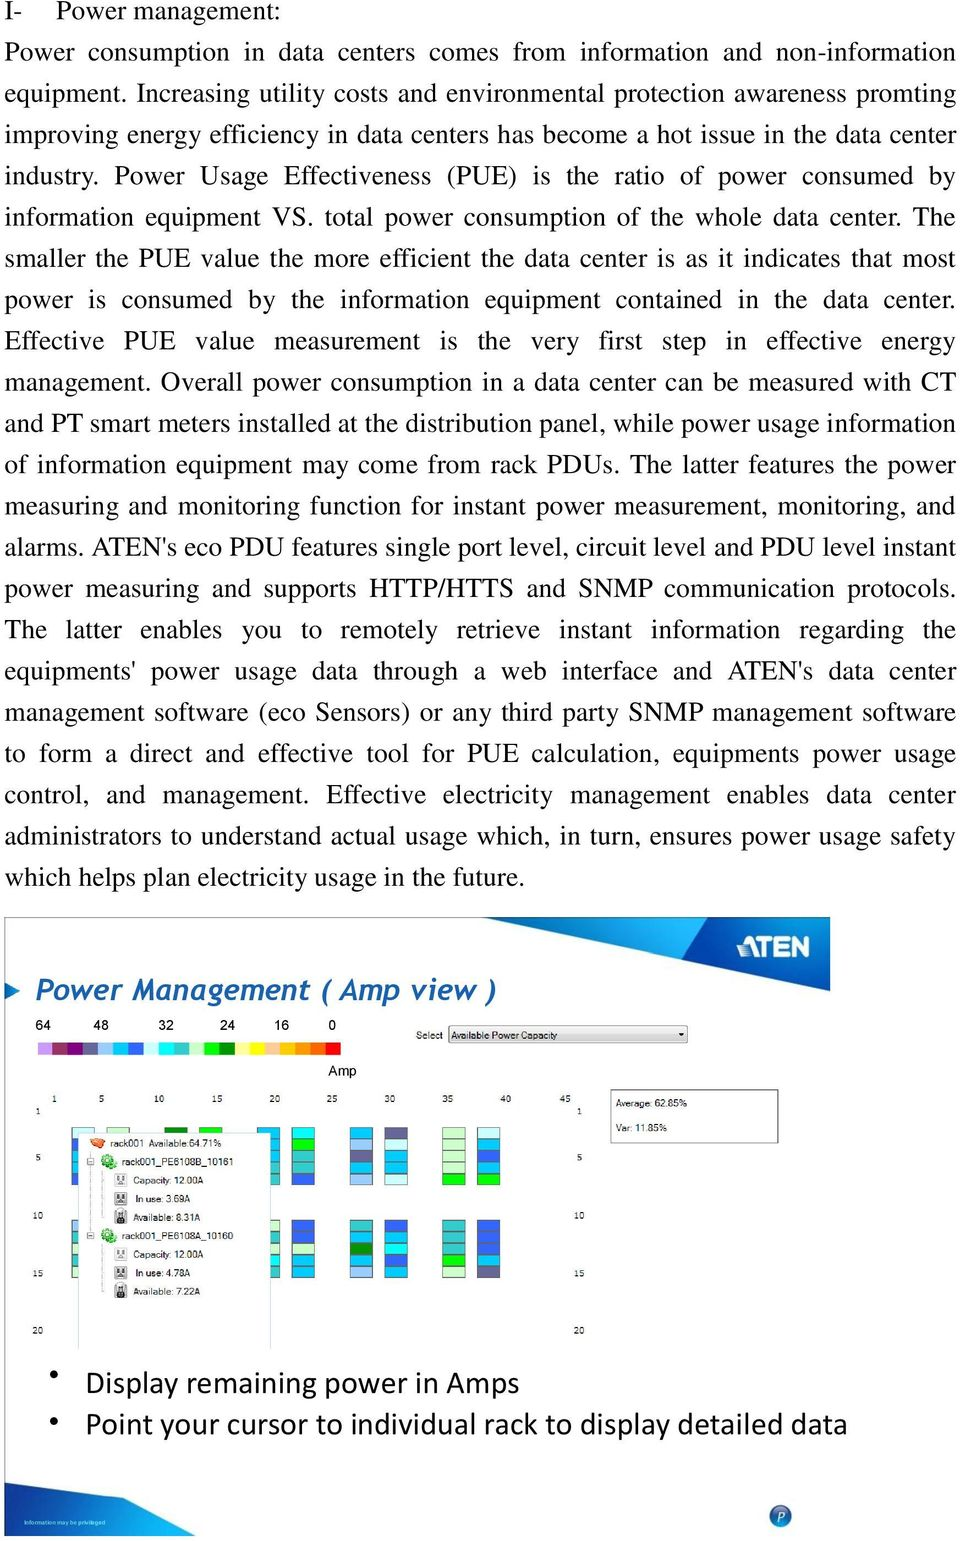 Power Usage Effectiveness (PUE) is the ratio of power consumed by information equipment VS. total power consumption of the whole data center.